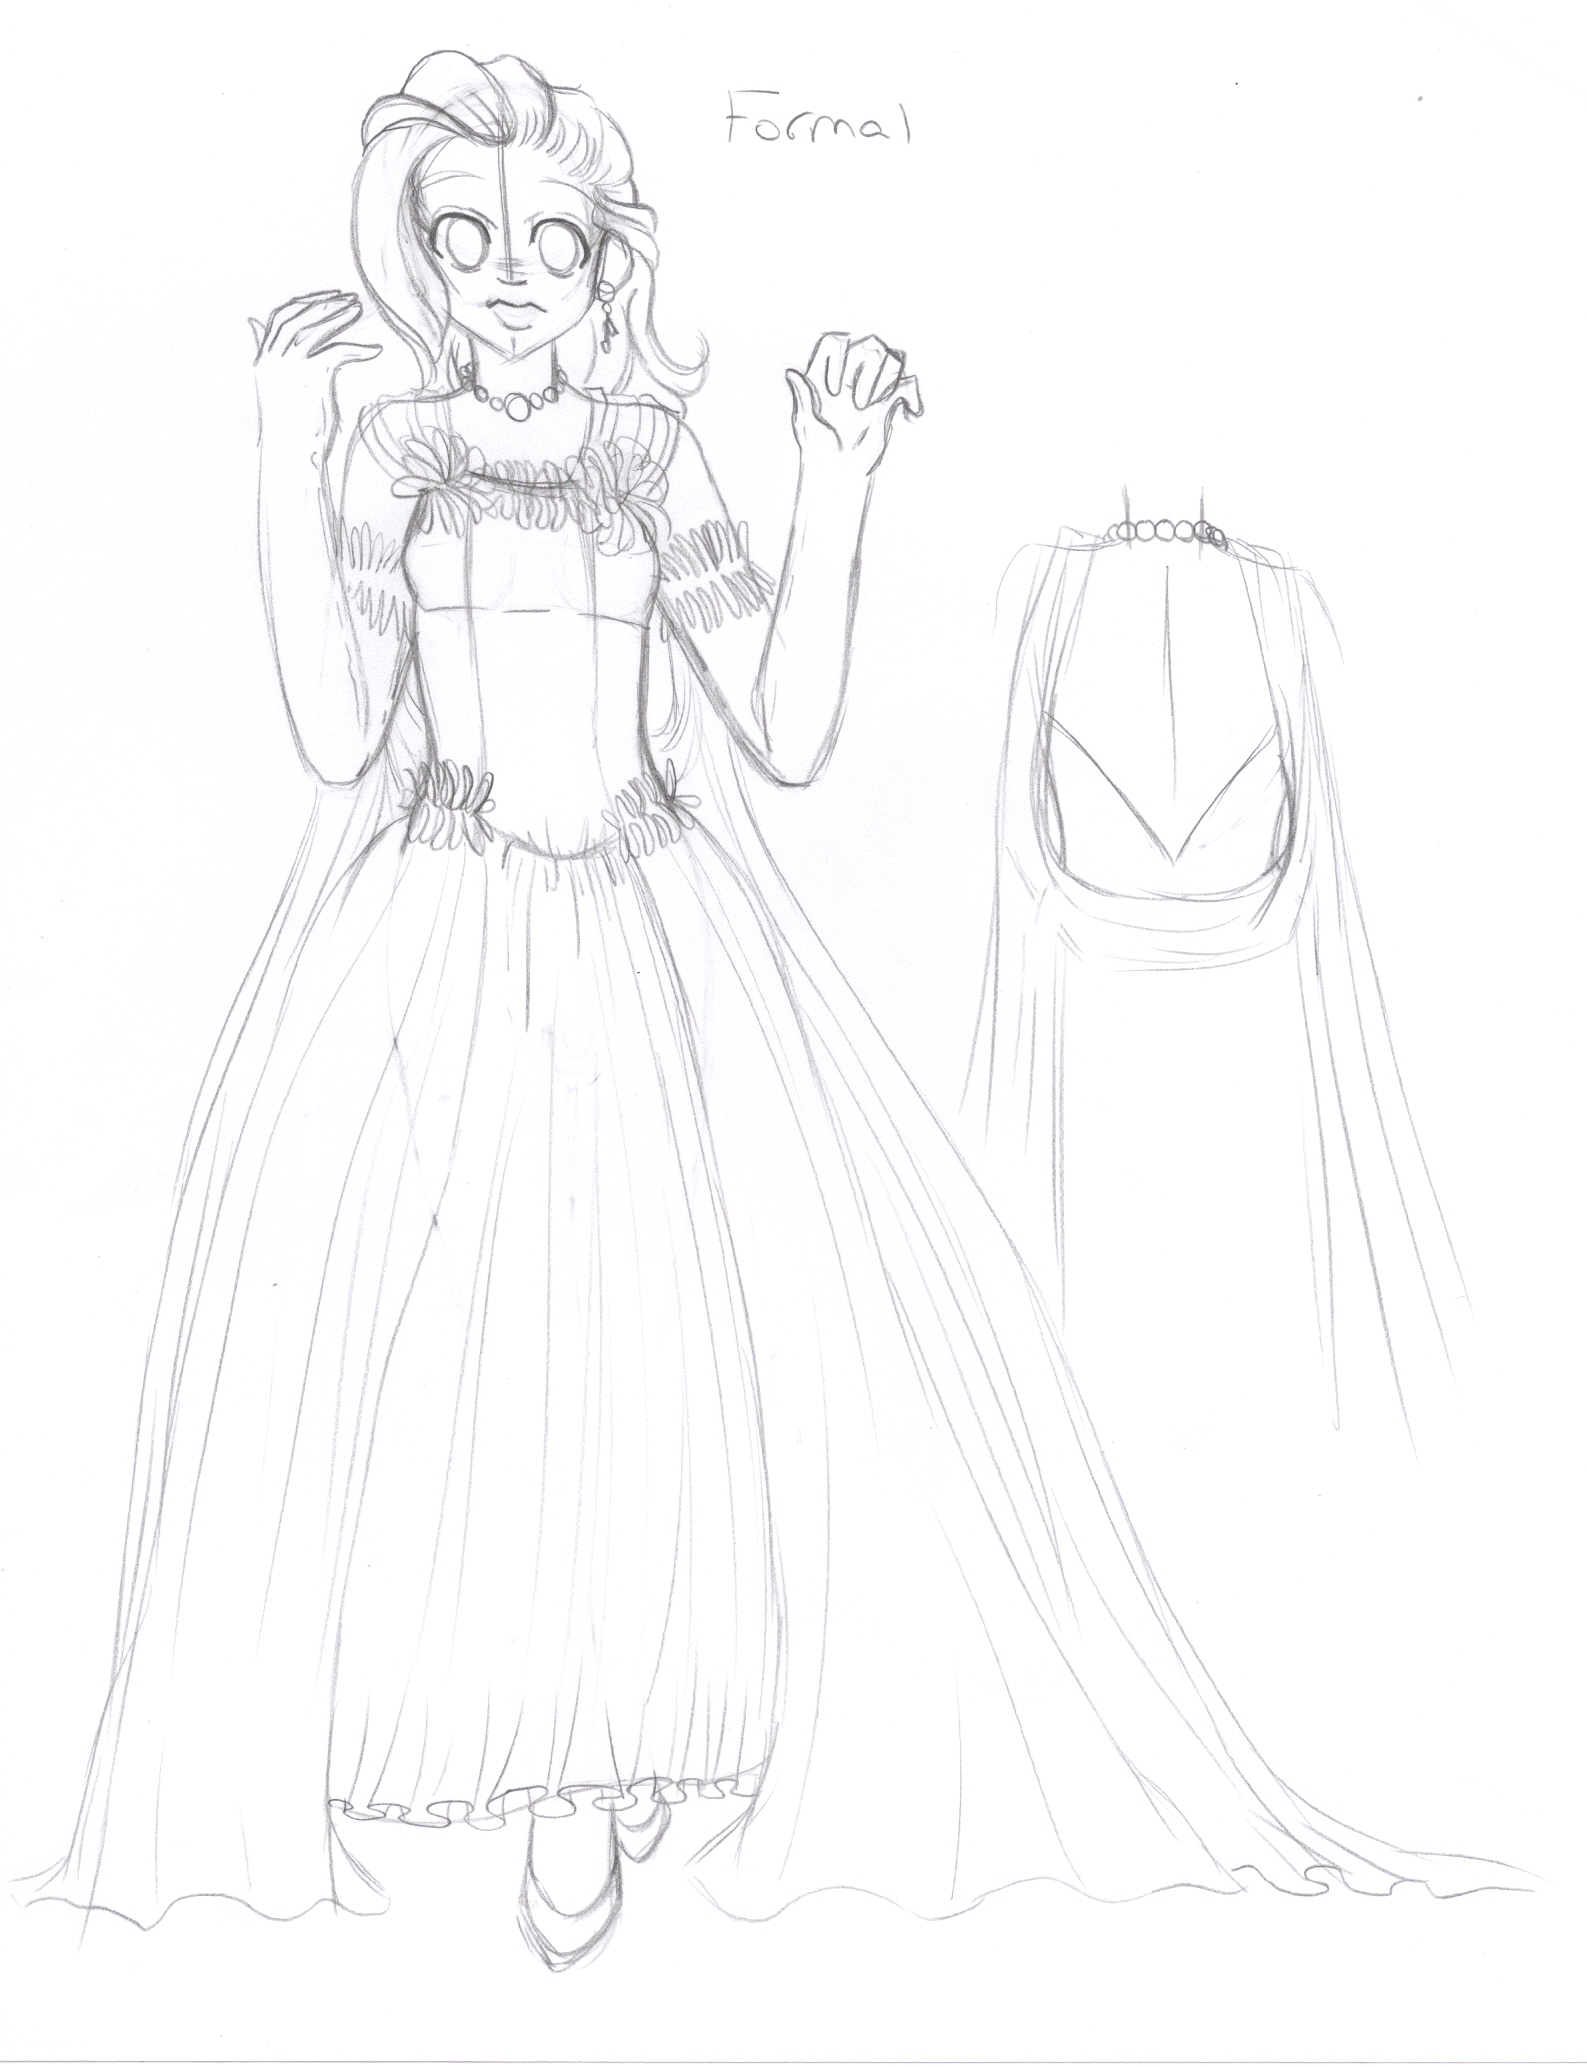 CGS - Formal Dress Sketch By Wildnature03 On DeviantArt